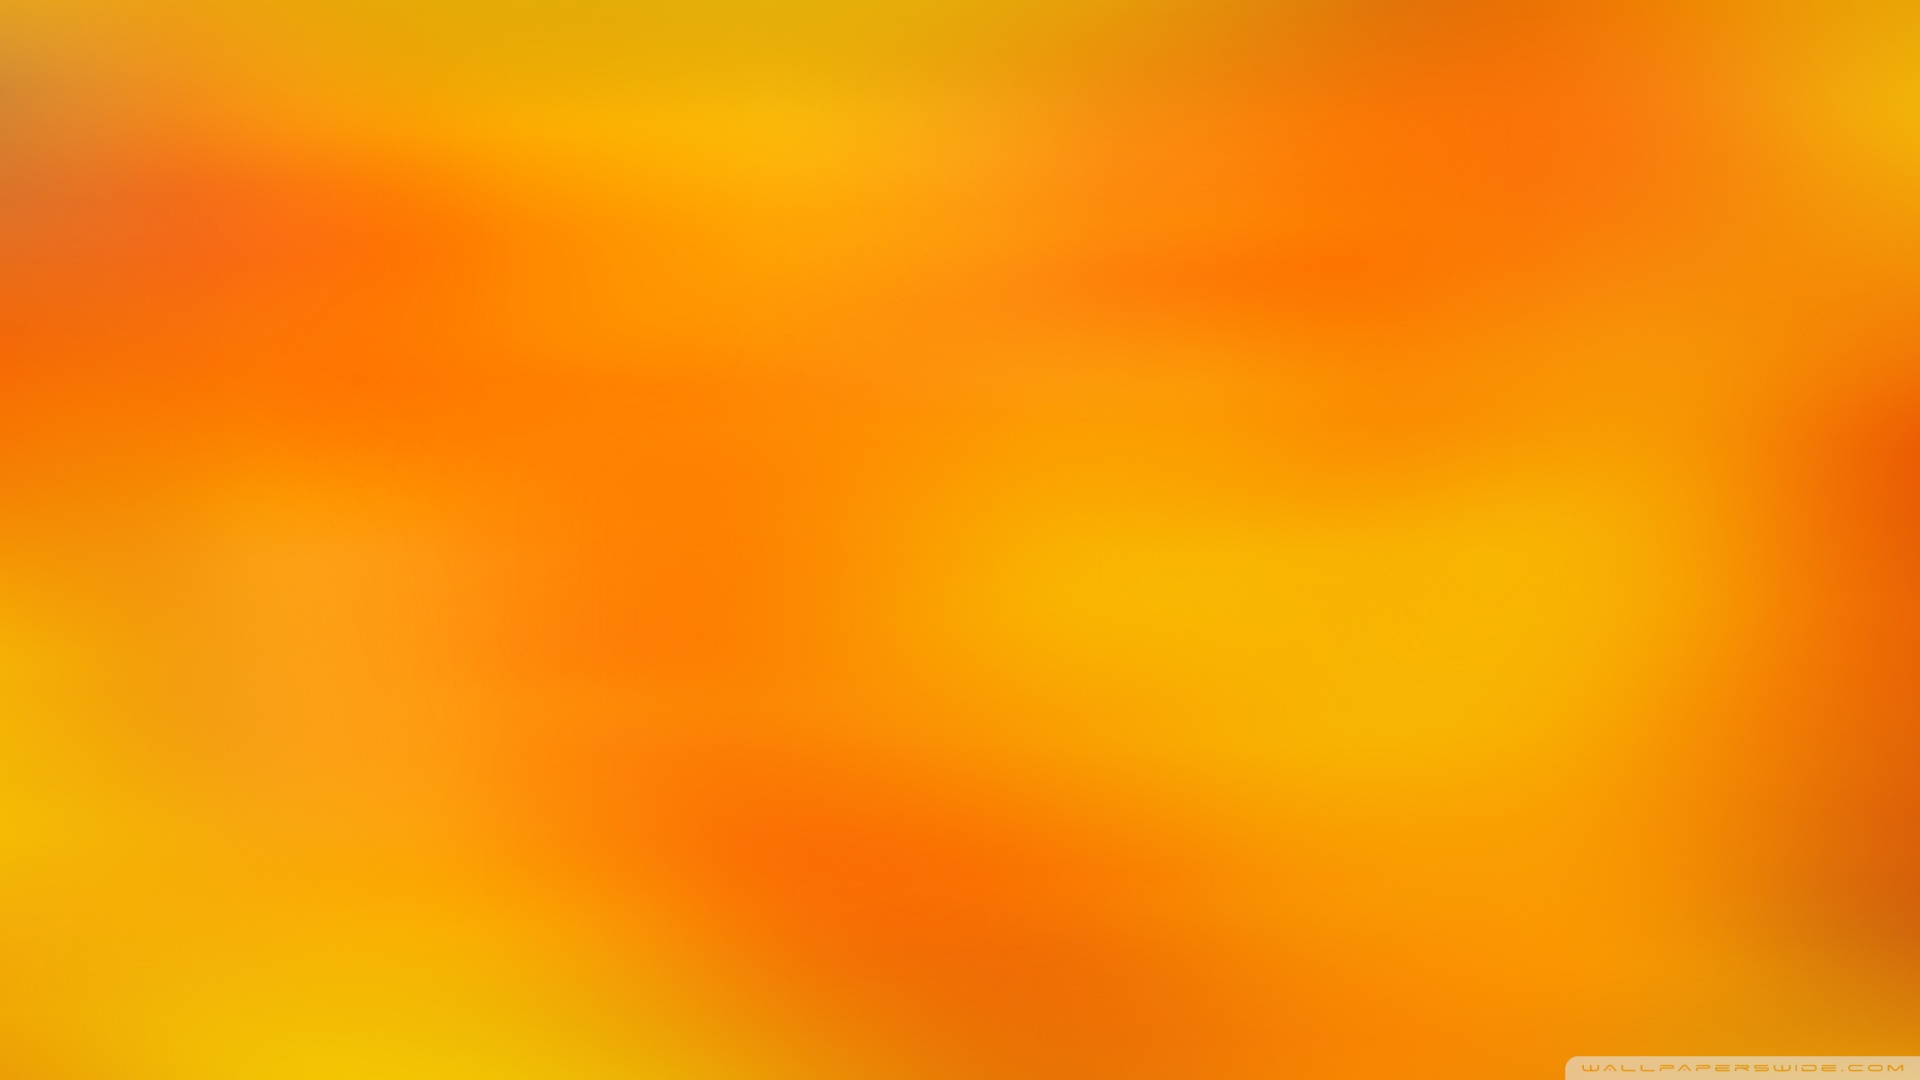 HD Wallpaper Orange